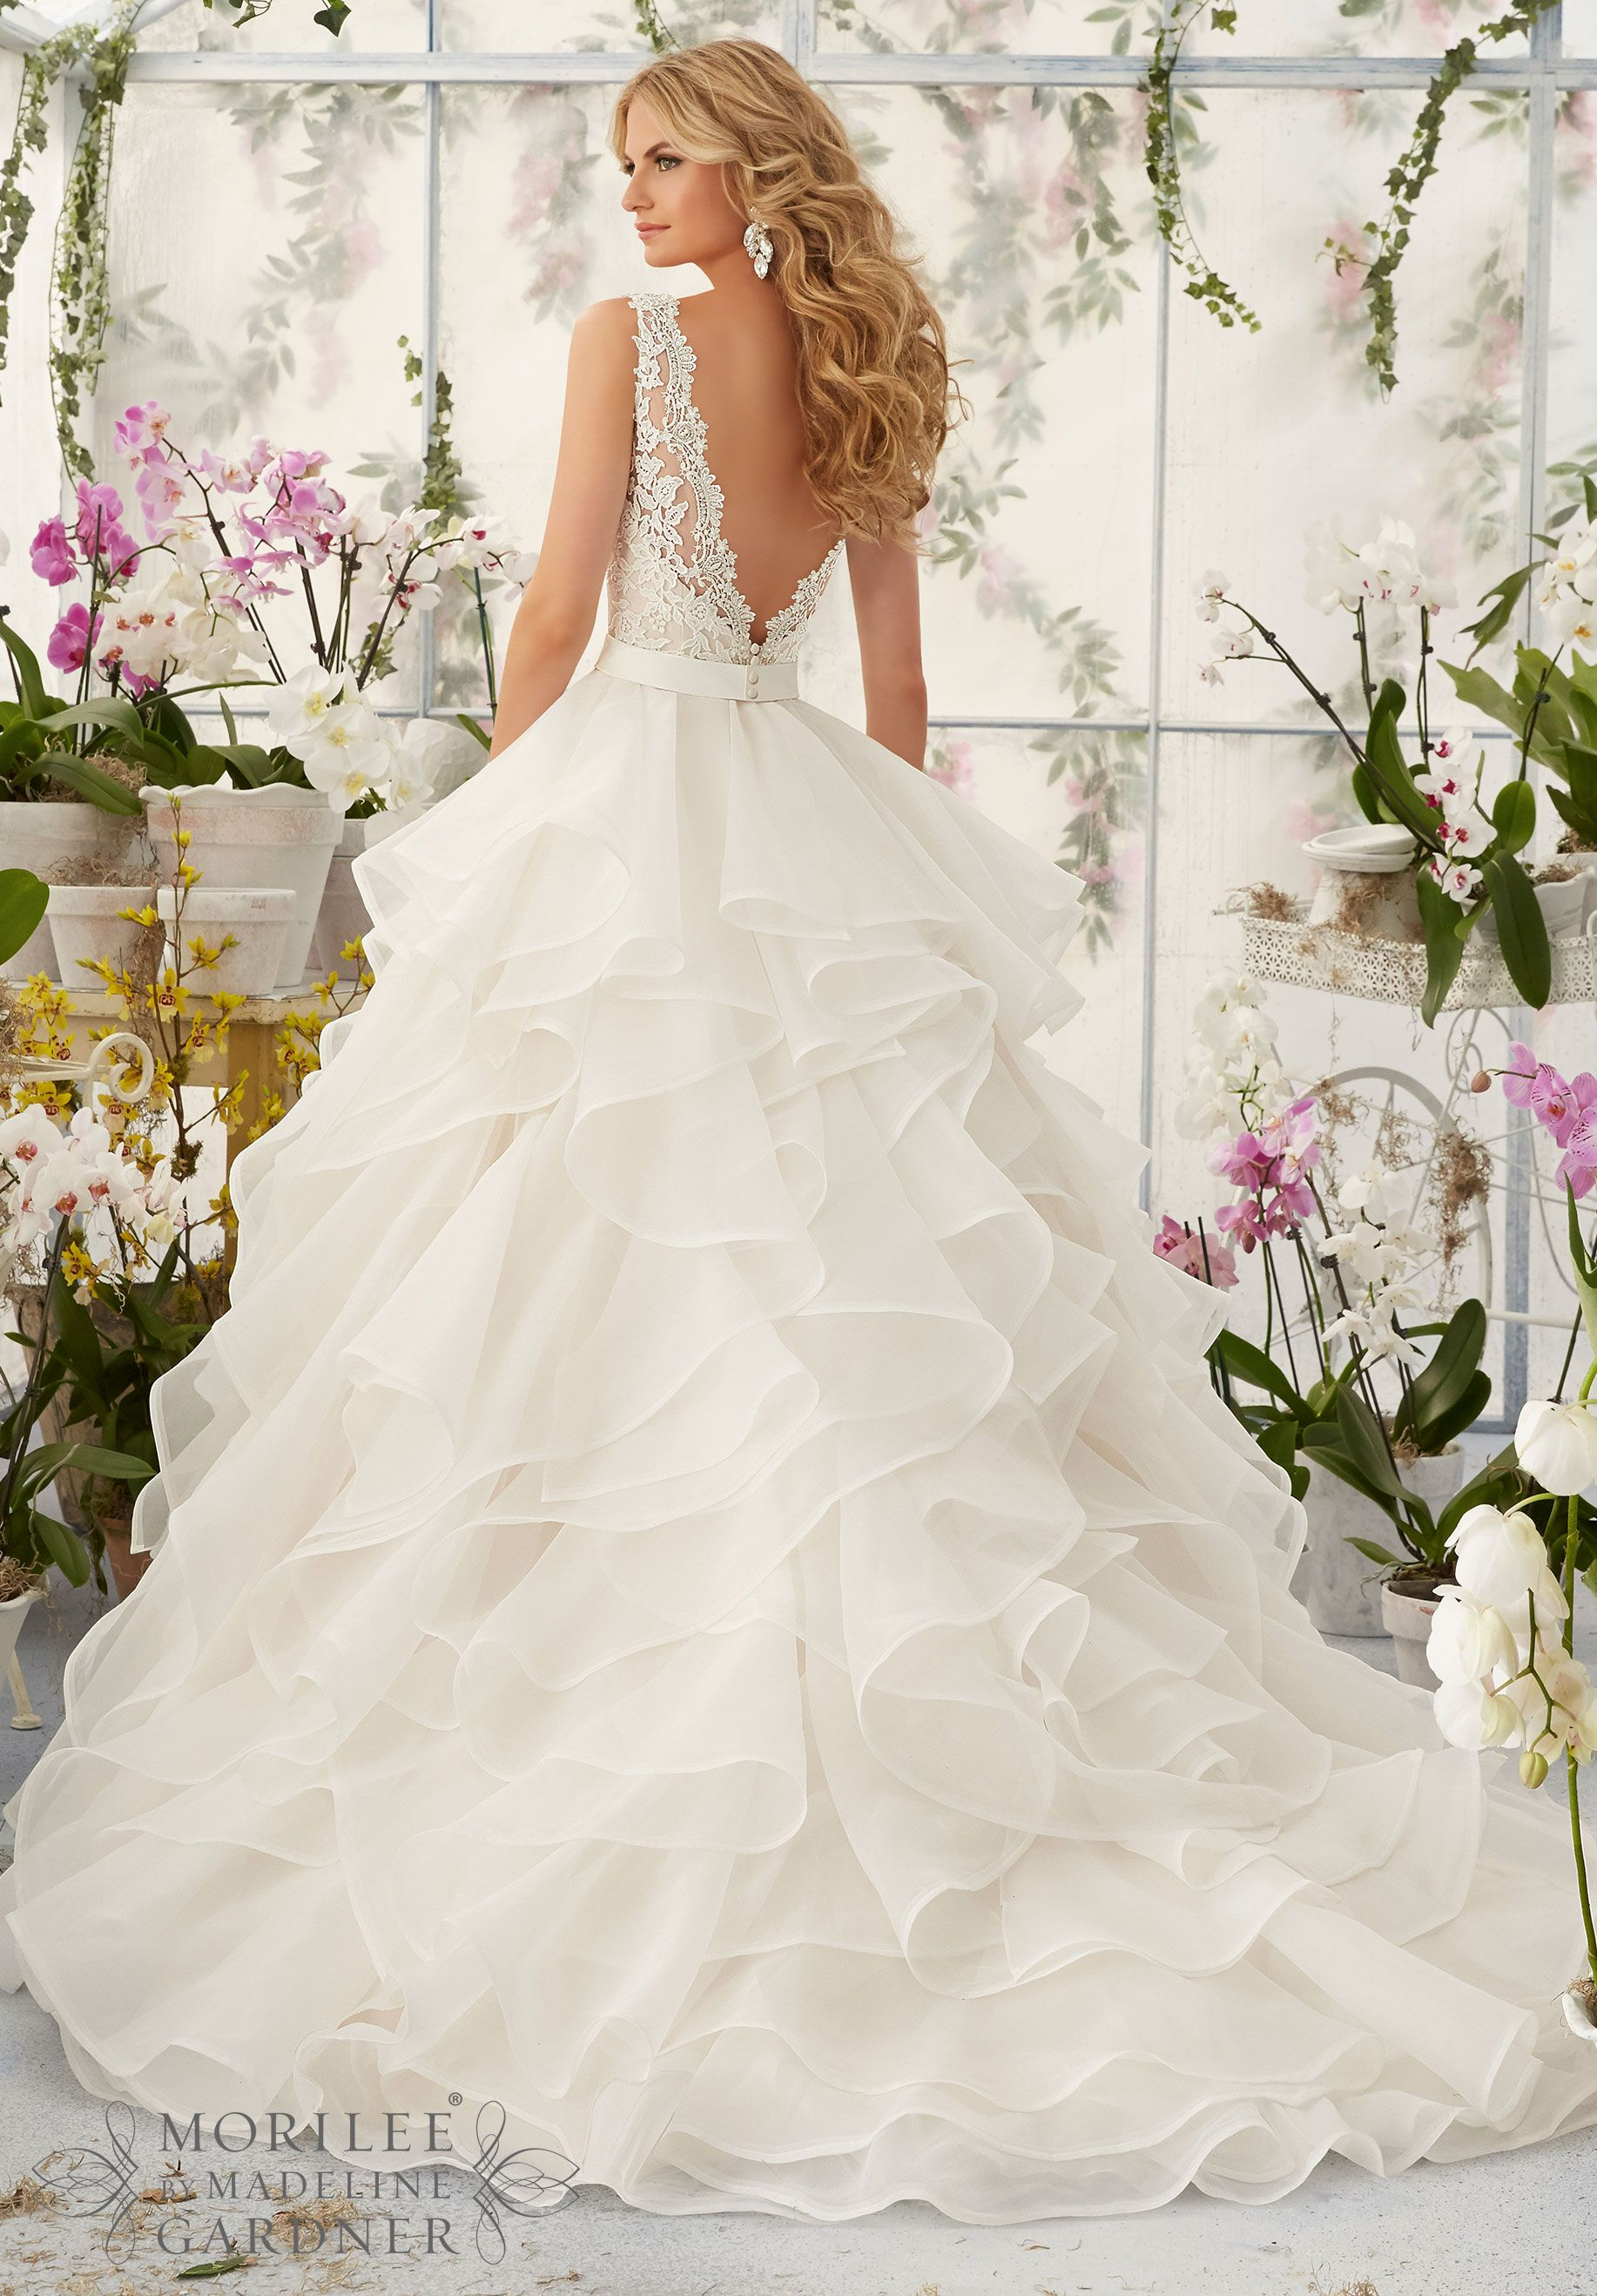 Wedding Dress 2805 Venice Lace Appliques Sprinkled with Delicate Beading  onto the Flounced Organza Skirt